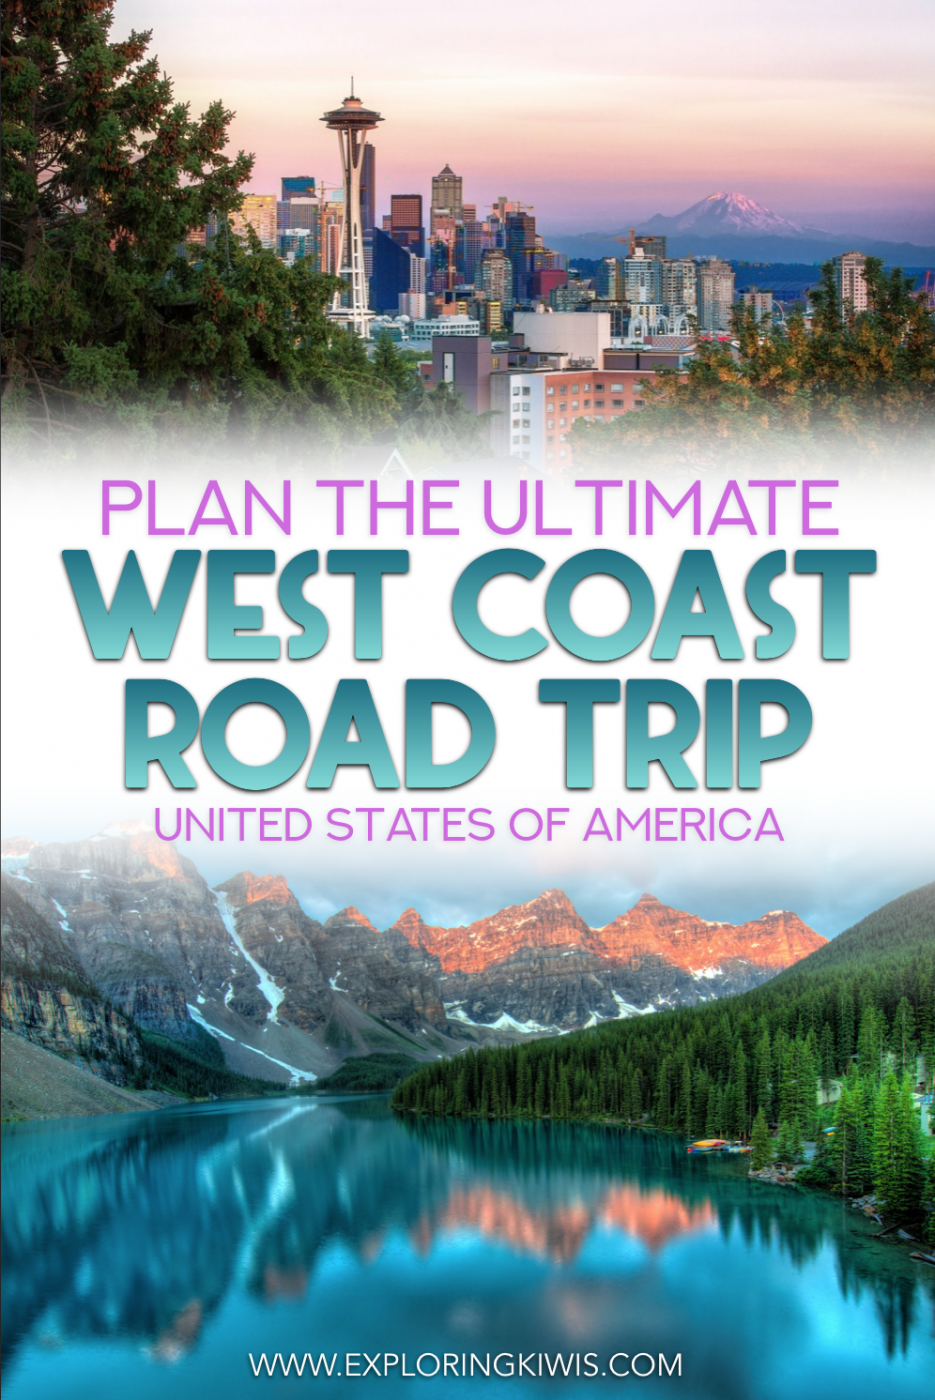 Plan your road trip through the West Coast of the United States. With accommodation, budgeting, a packing list, transport info and much more, this is the only guide you\'ll need to uncover the West Coast.